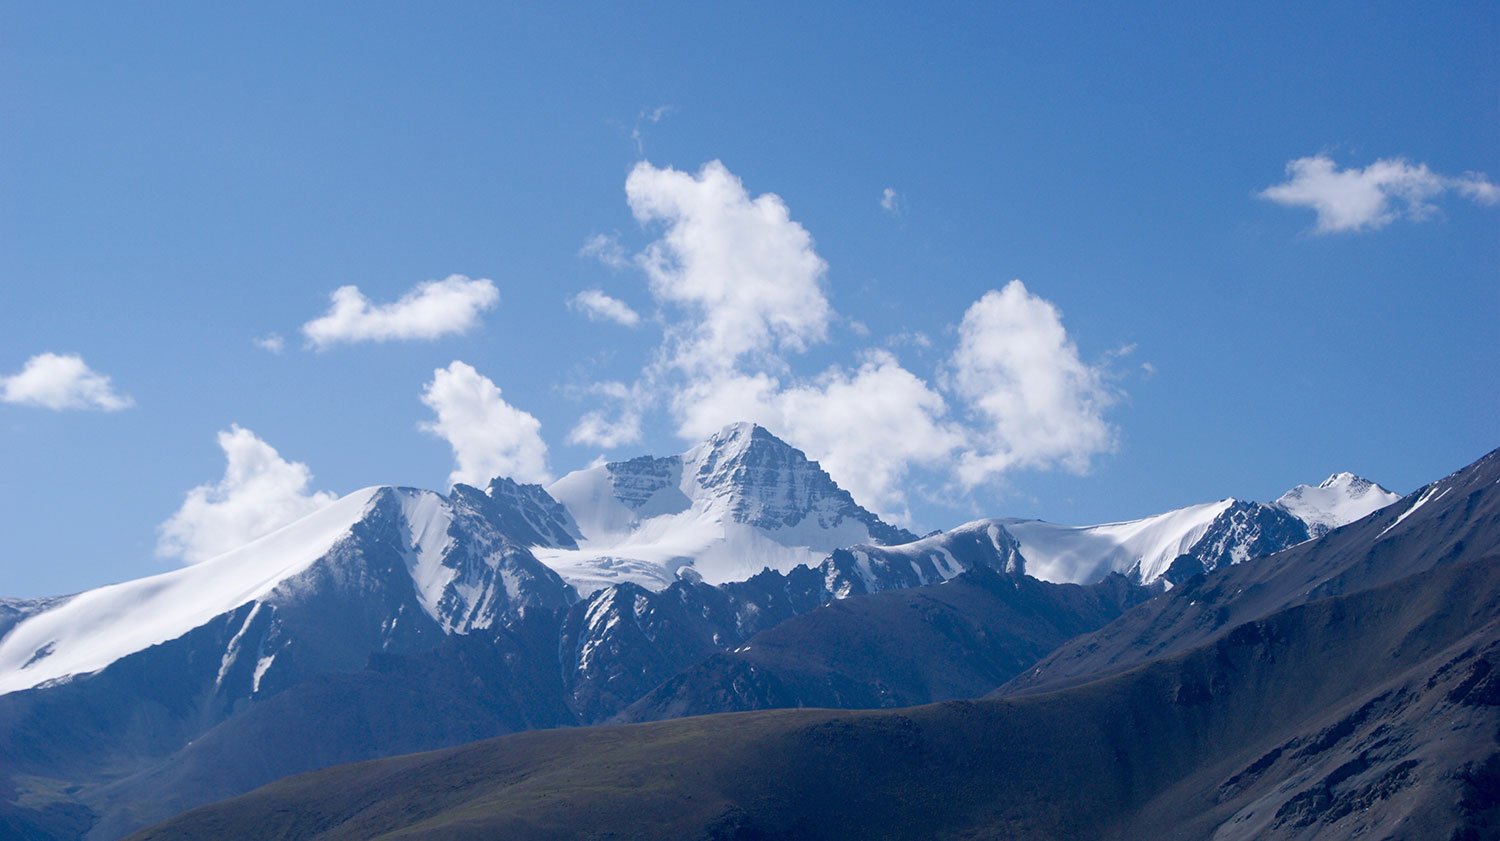 Stok Kangri in the Himalayas